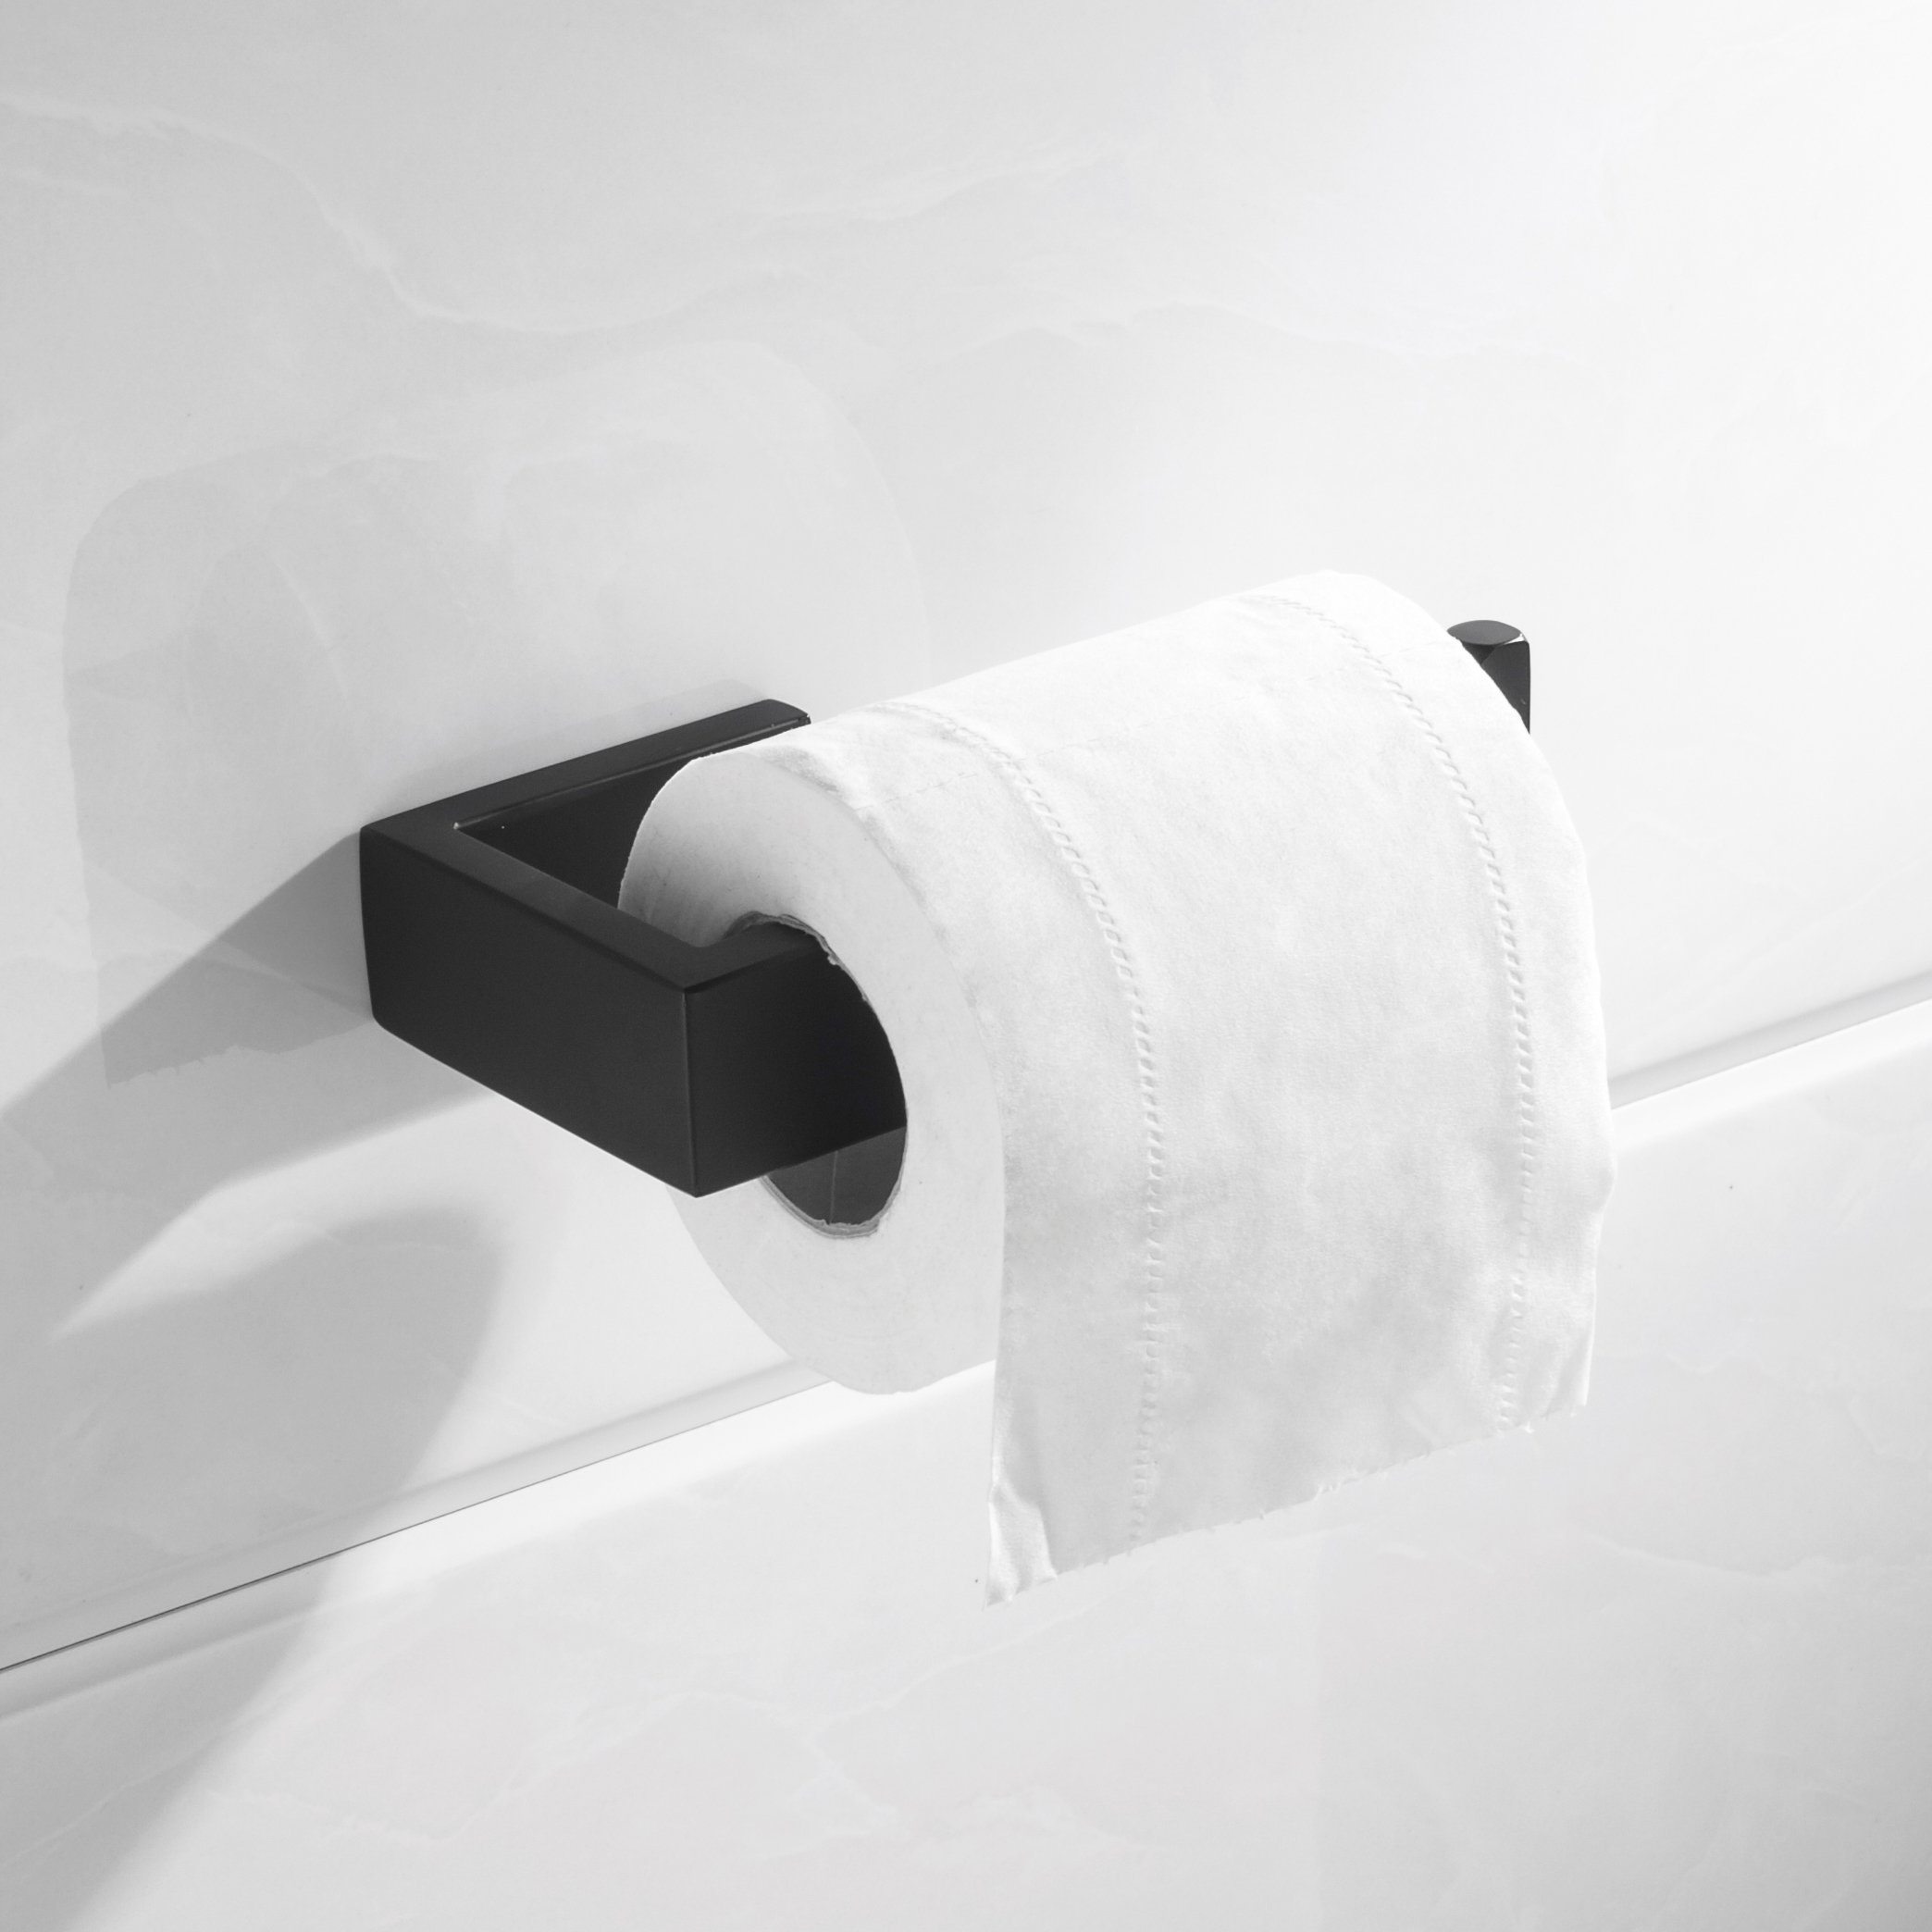 Nolimas Toilet Paper Roll Holder Matte Black SUS304 Stainless Steel Bathroom Lavatory Rust Proof Toilet Tissue Holder Wall Mount